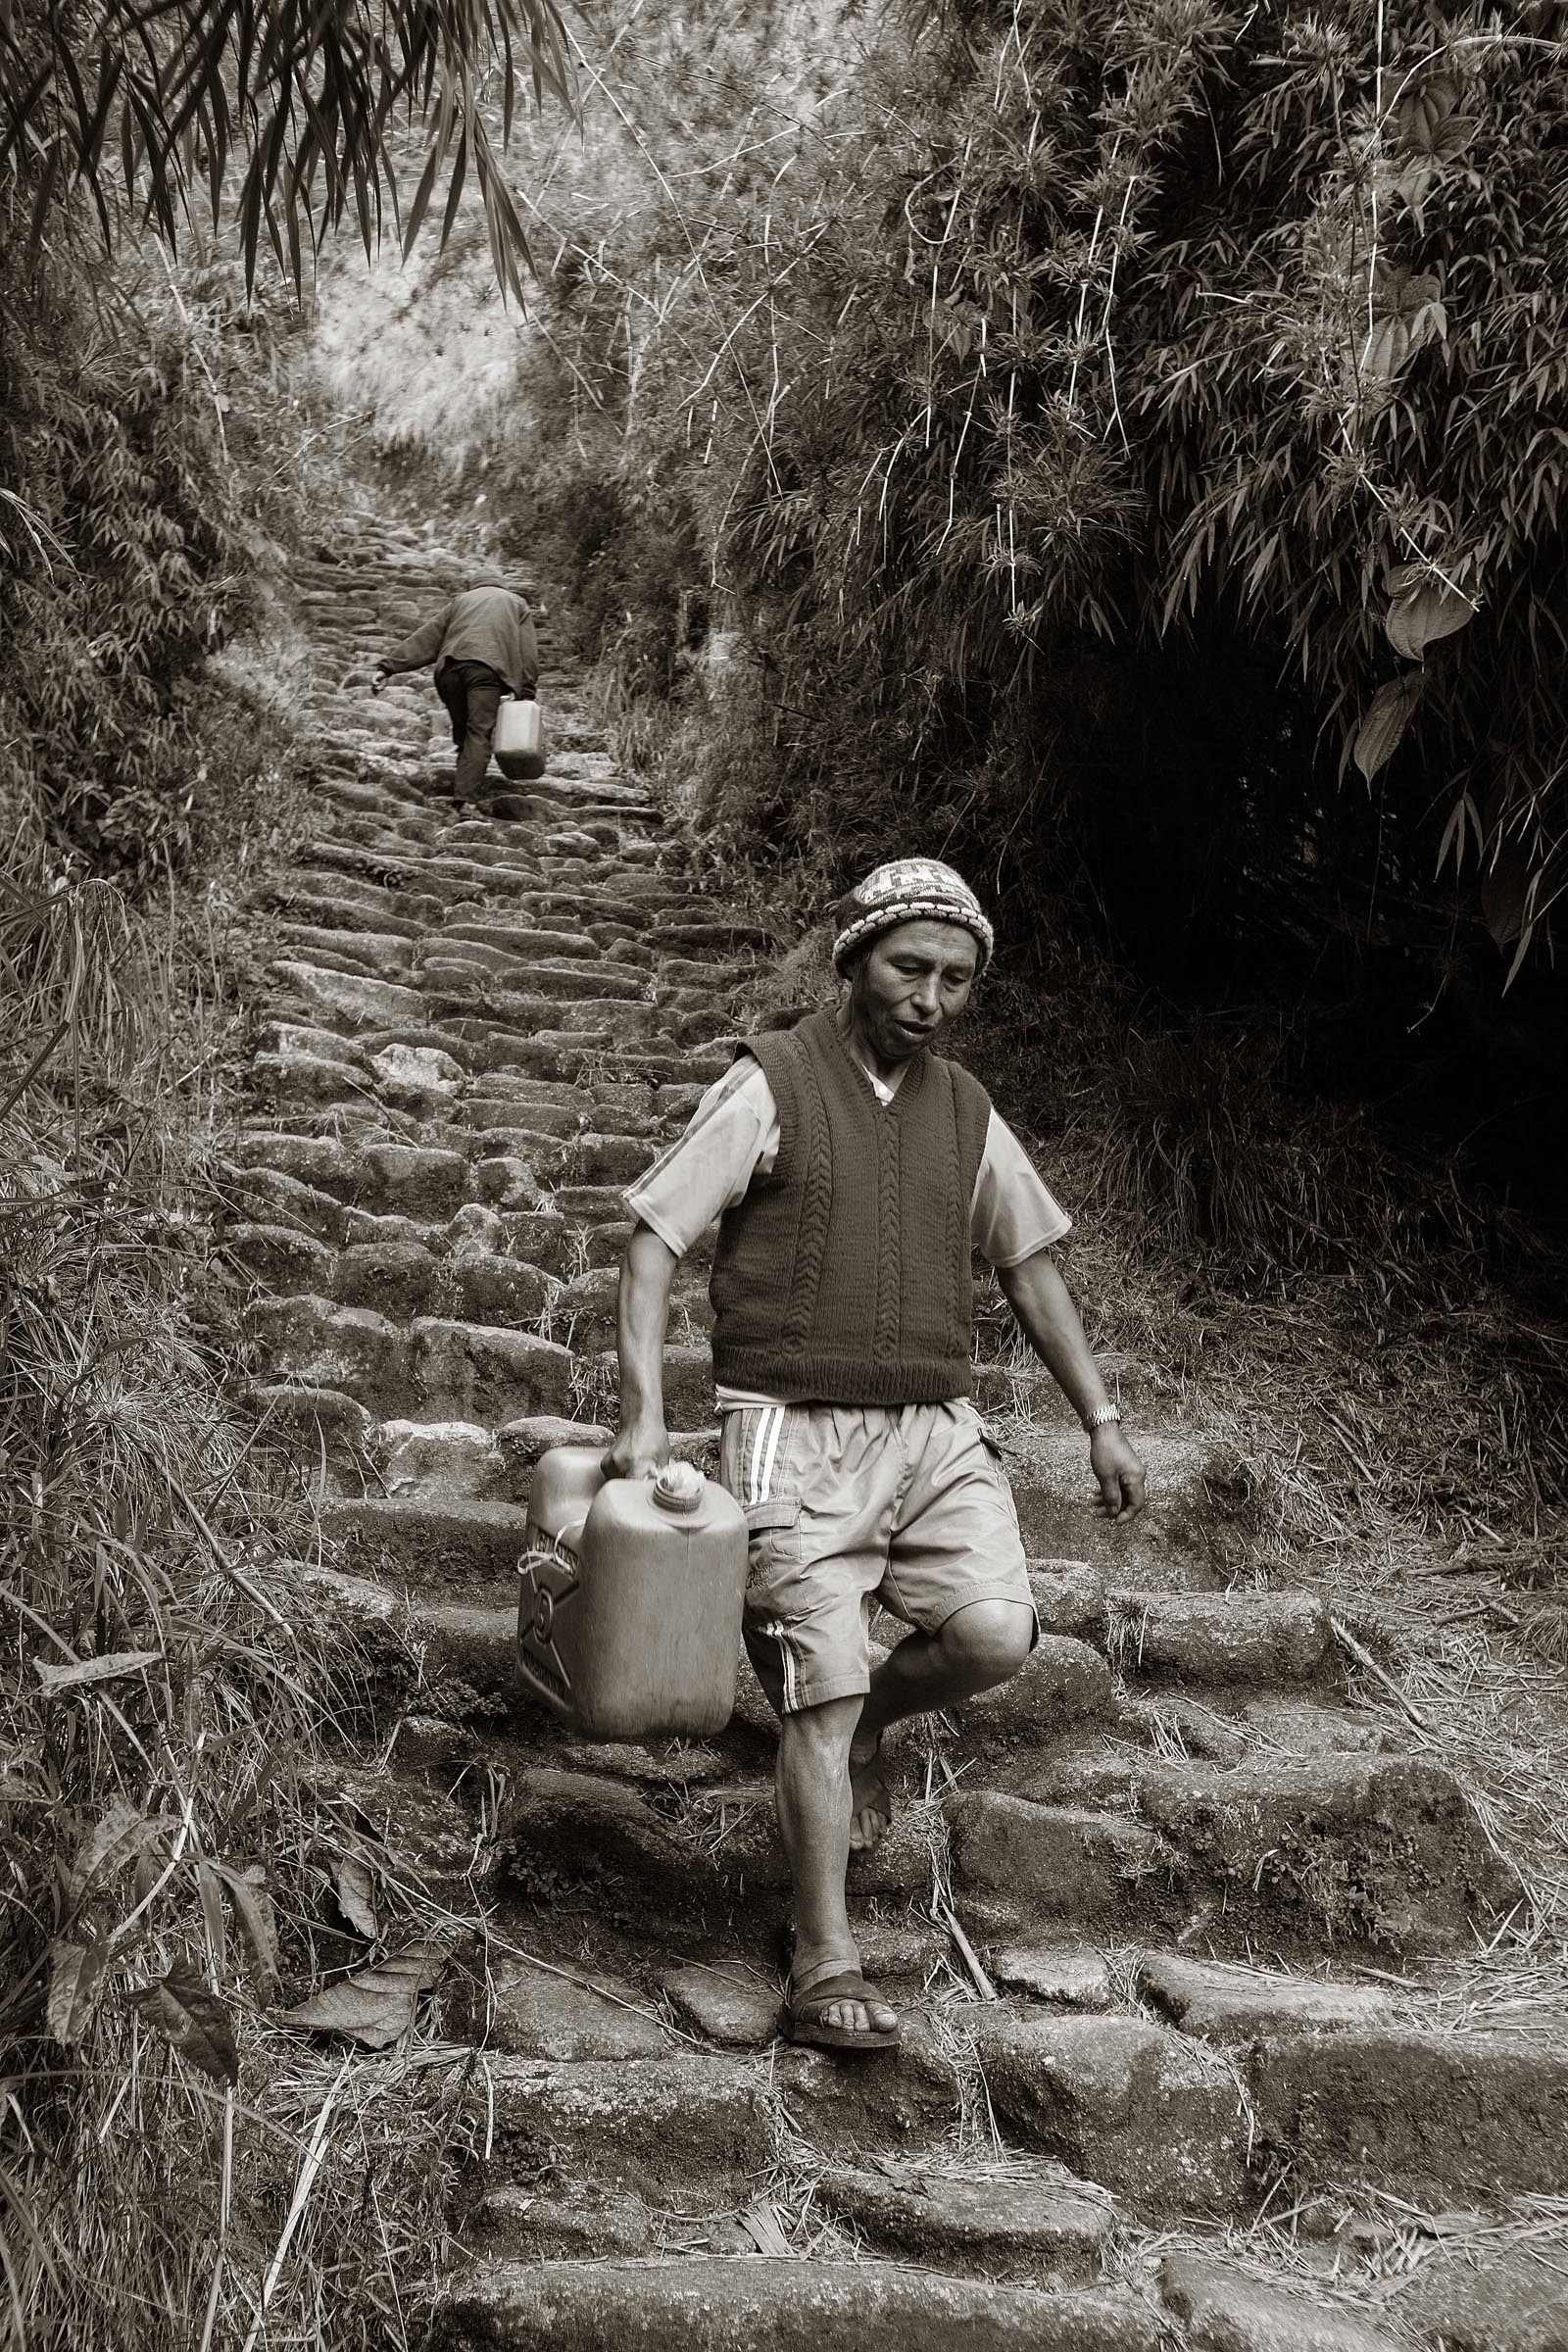 Porters going to and from a water supply at the Phuyupatamarca ruins.